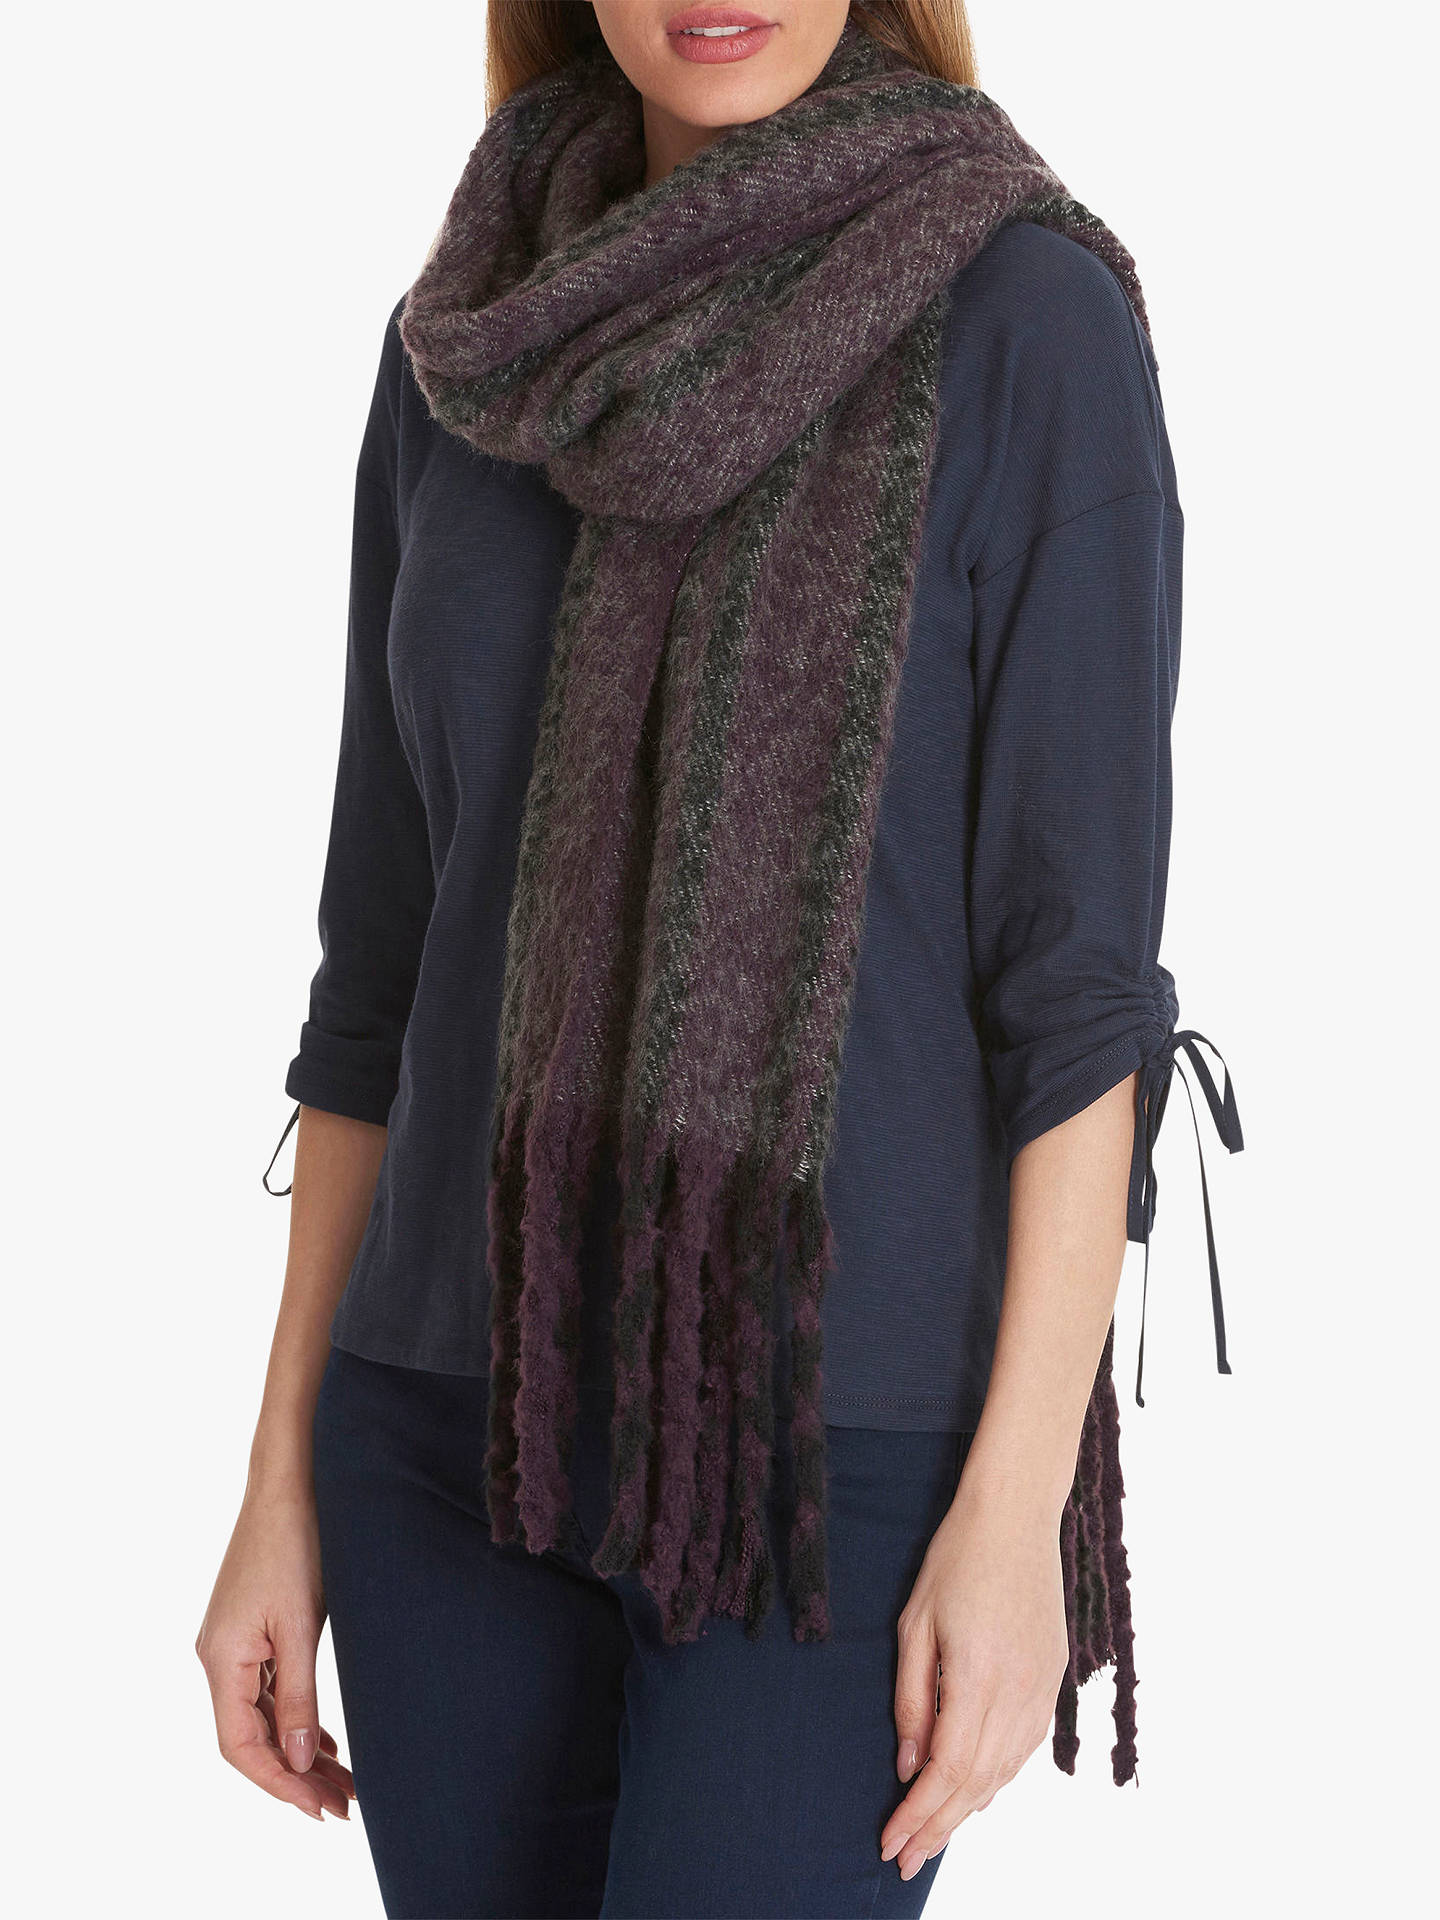 BuyBetty Barclay Check Scarf, Purple/Black Online at johnlewis.com